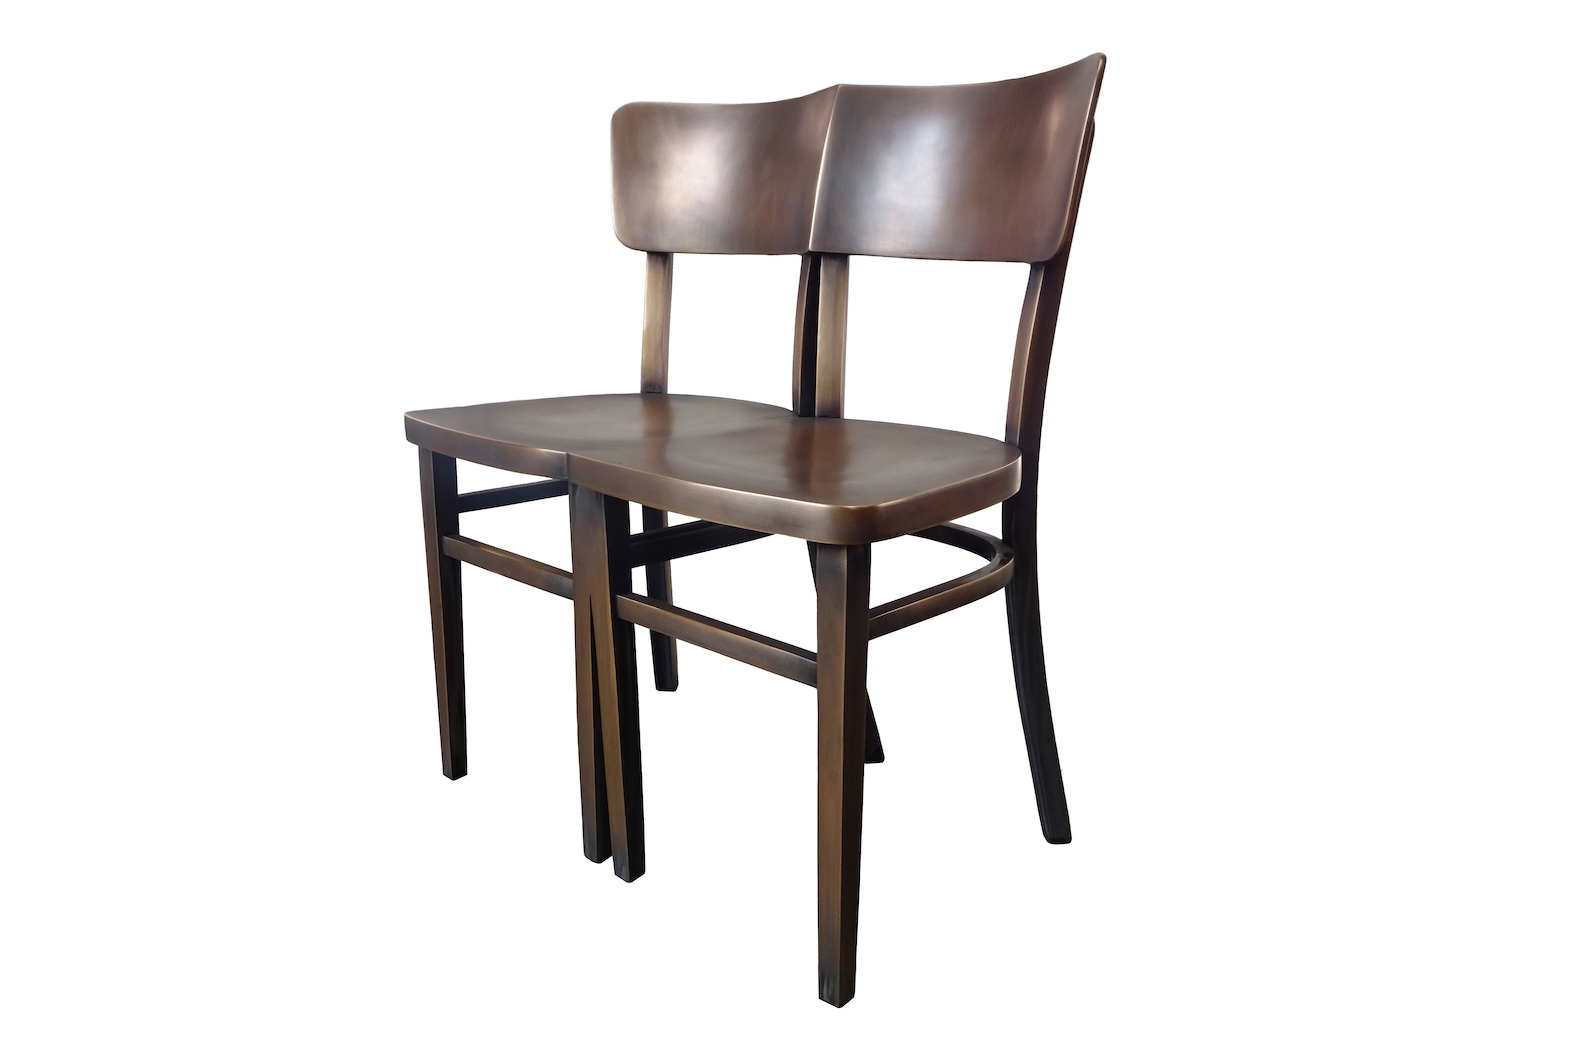 Patinated Crossed Leg Chair